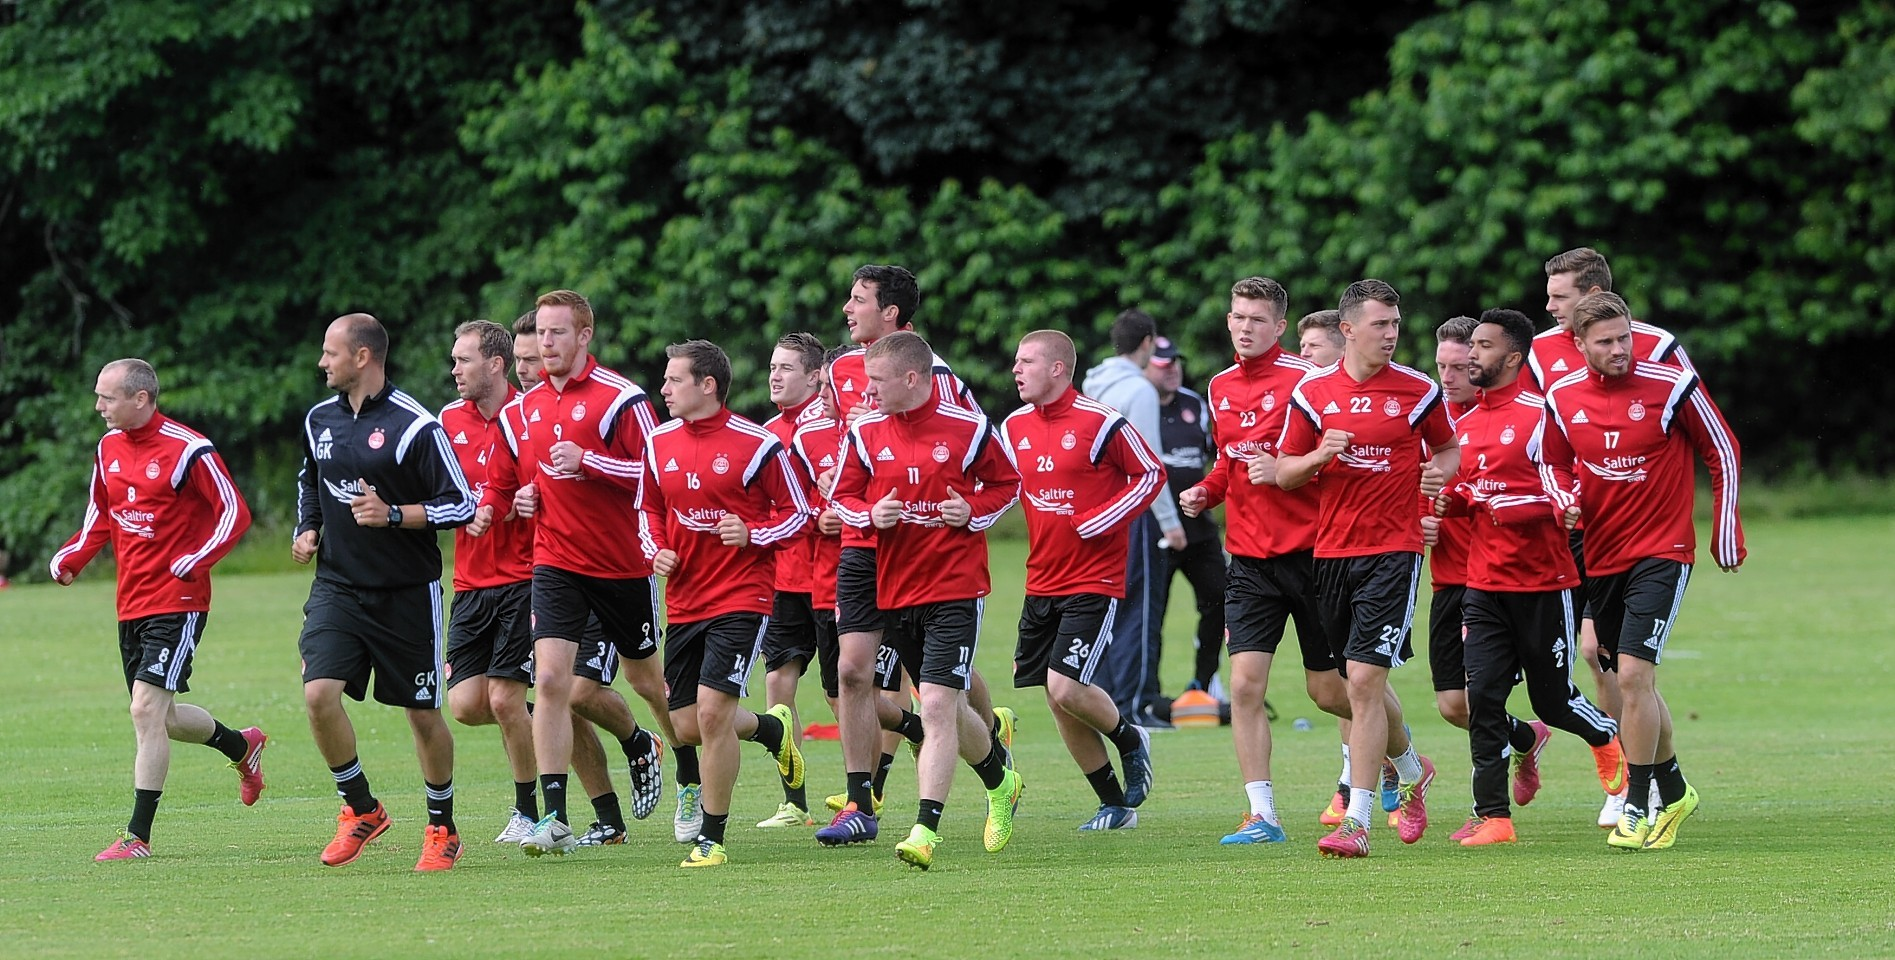 Dons training at Balgownie Playing Fields